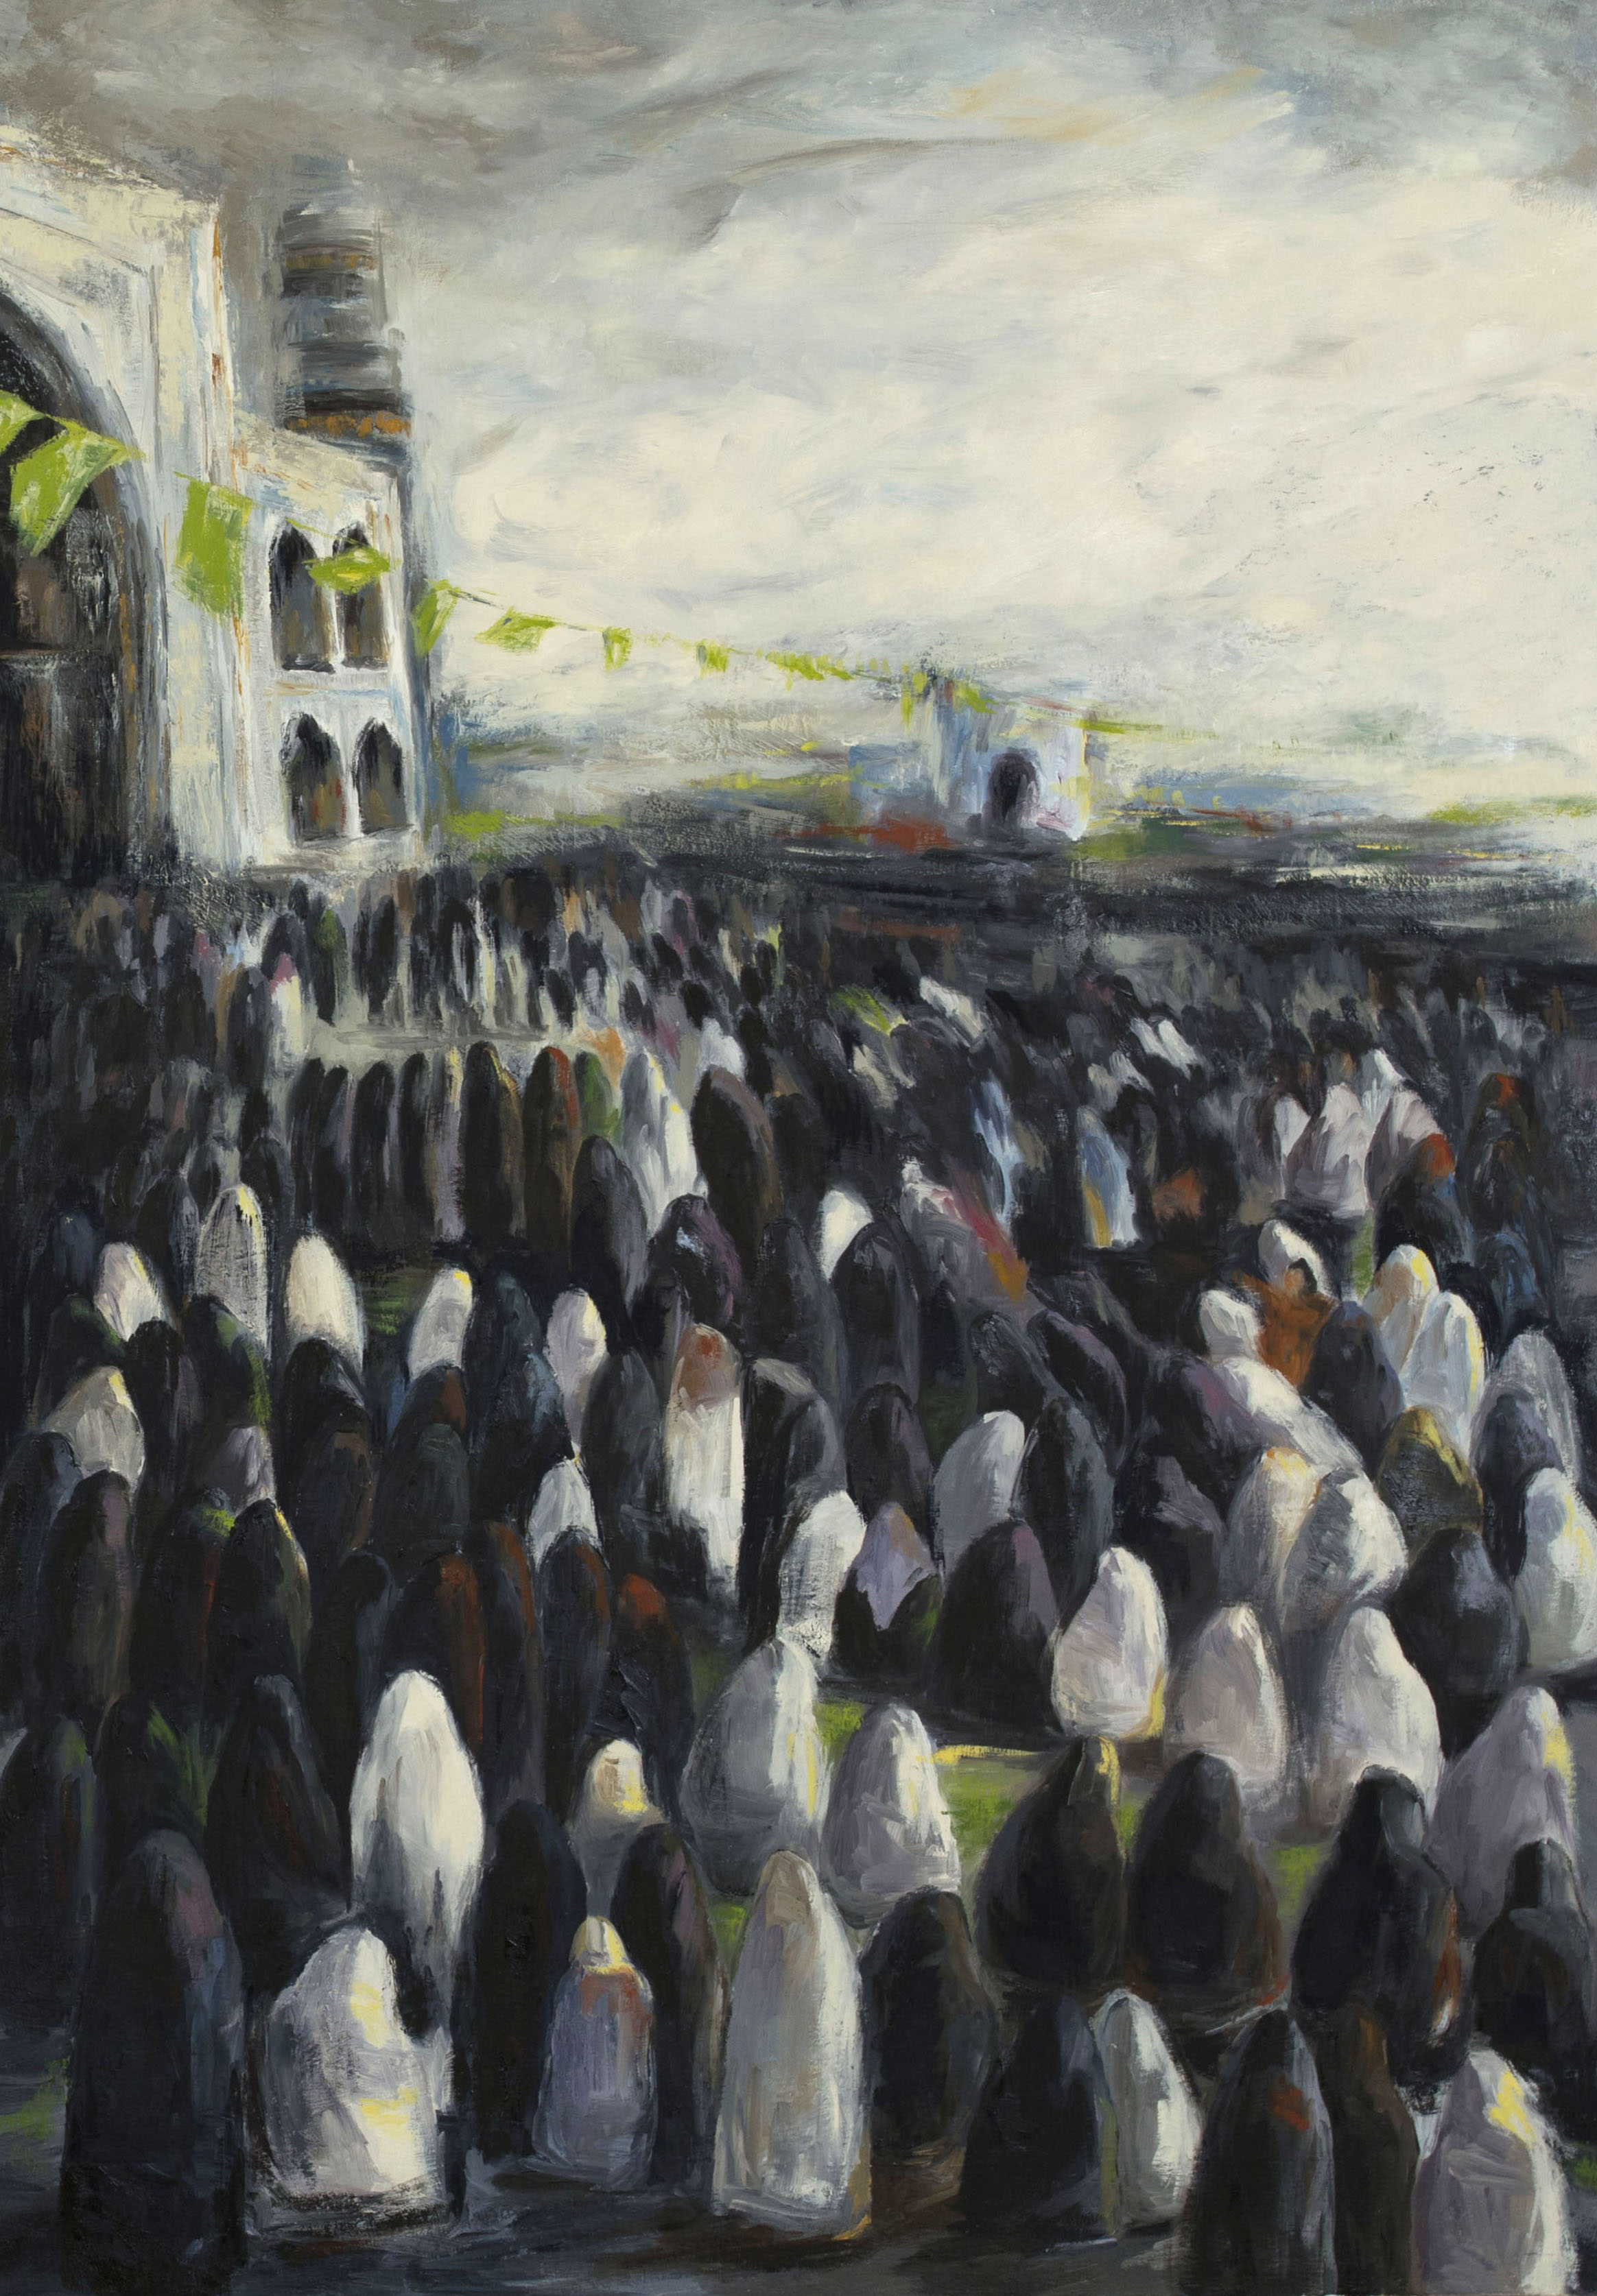 The crowd (diptych, right panel), 2013